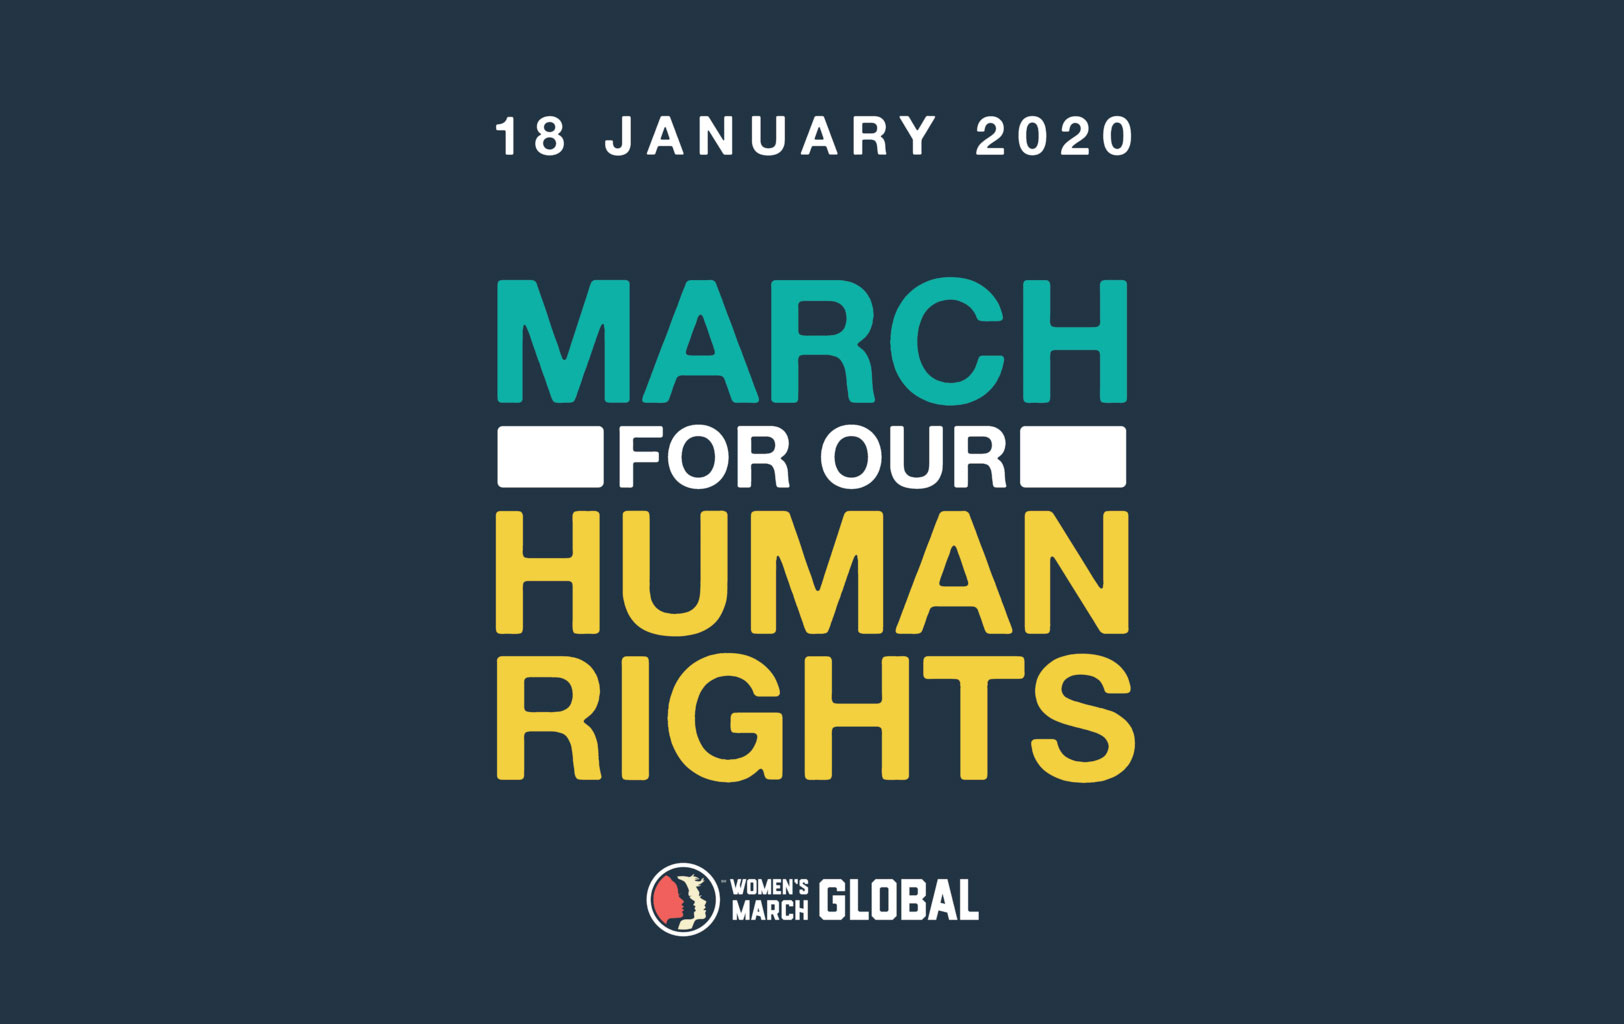 March for our human rights